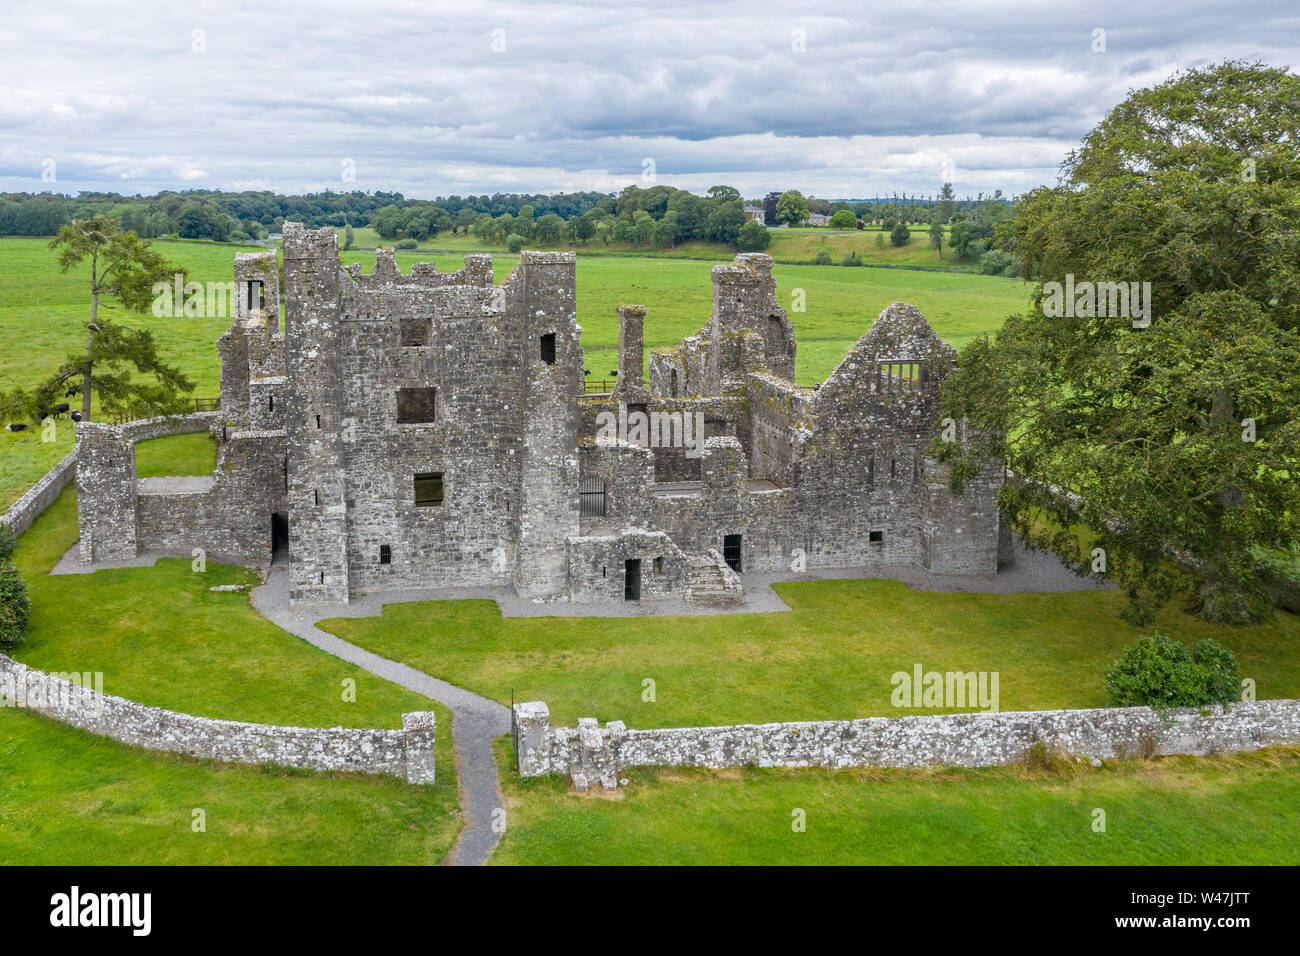 Bective Abbey founded in 1147 is a Cistercian abbey on the River Boyne in Bective, County Meath, Ireland. Stock Photo